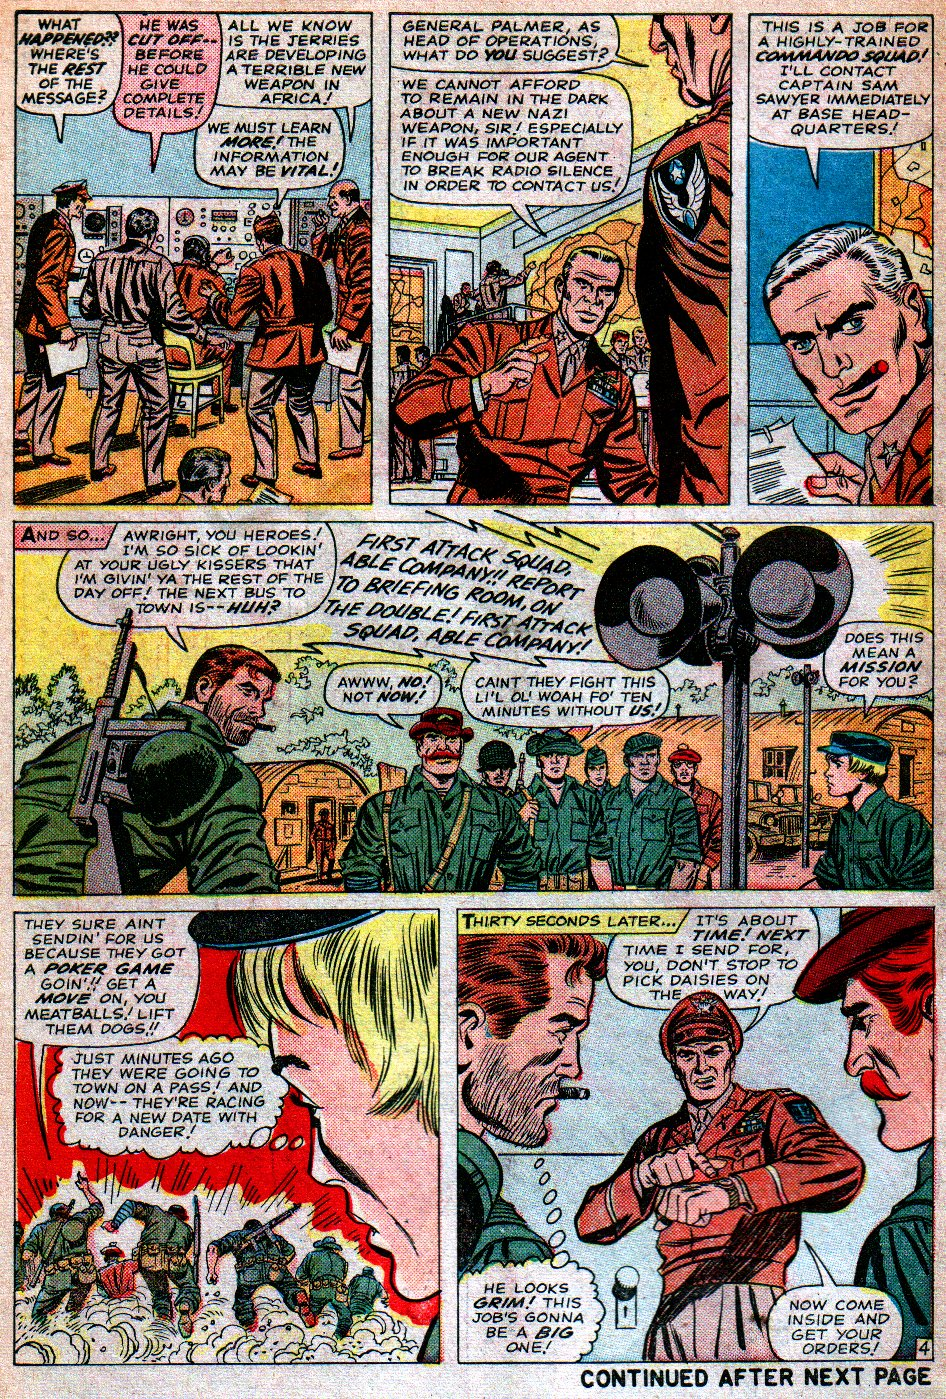 Read online Sgt. Fury comic -  Issue #16 - 6